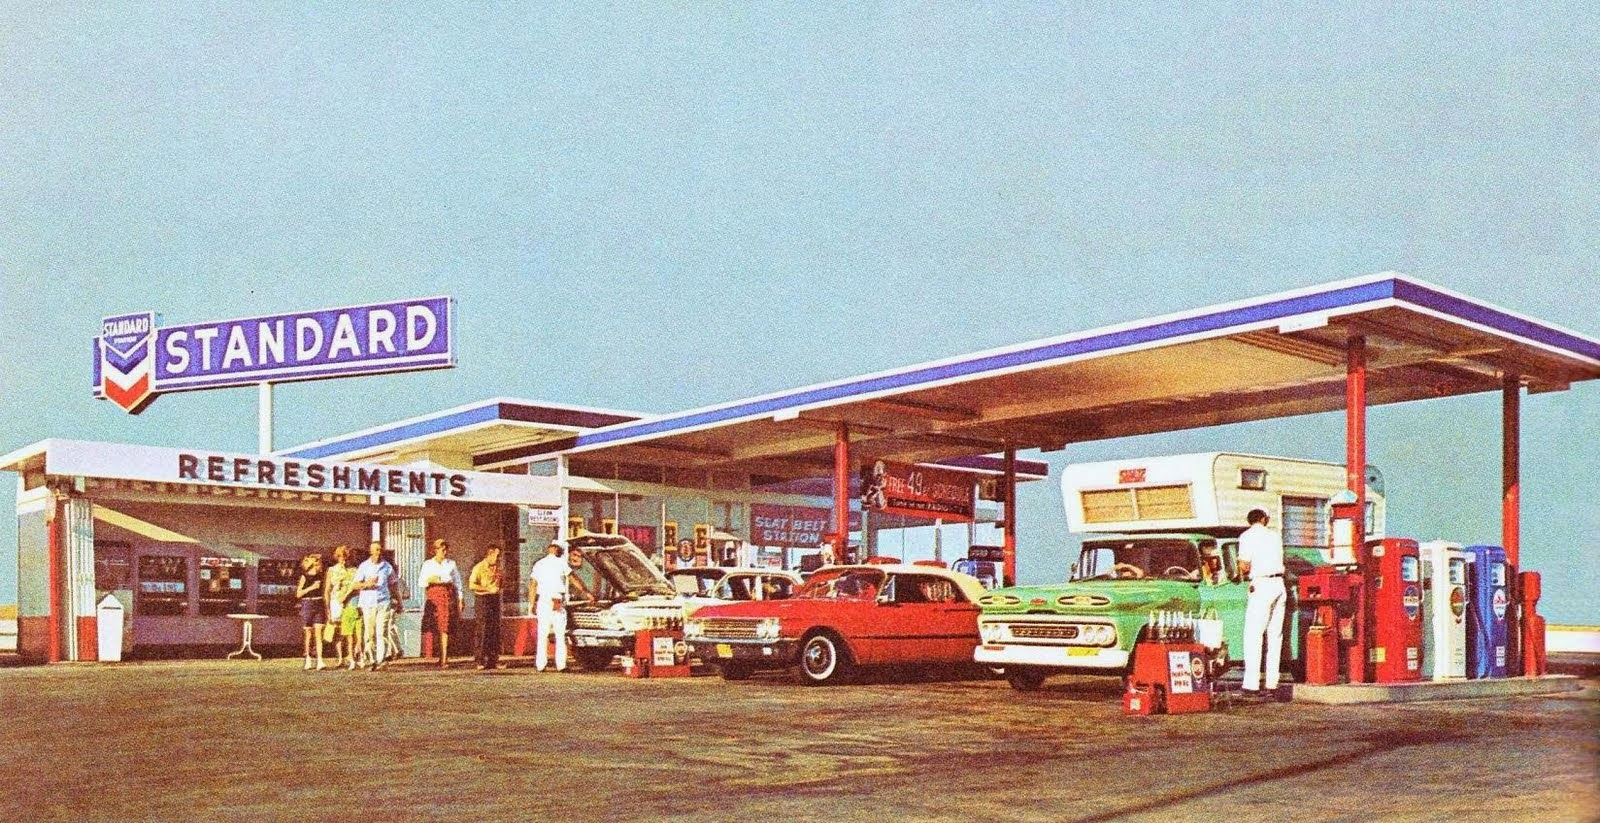 MOTORCYCLE 74: The Golden age of gas stations